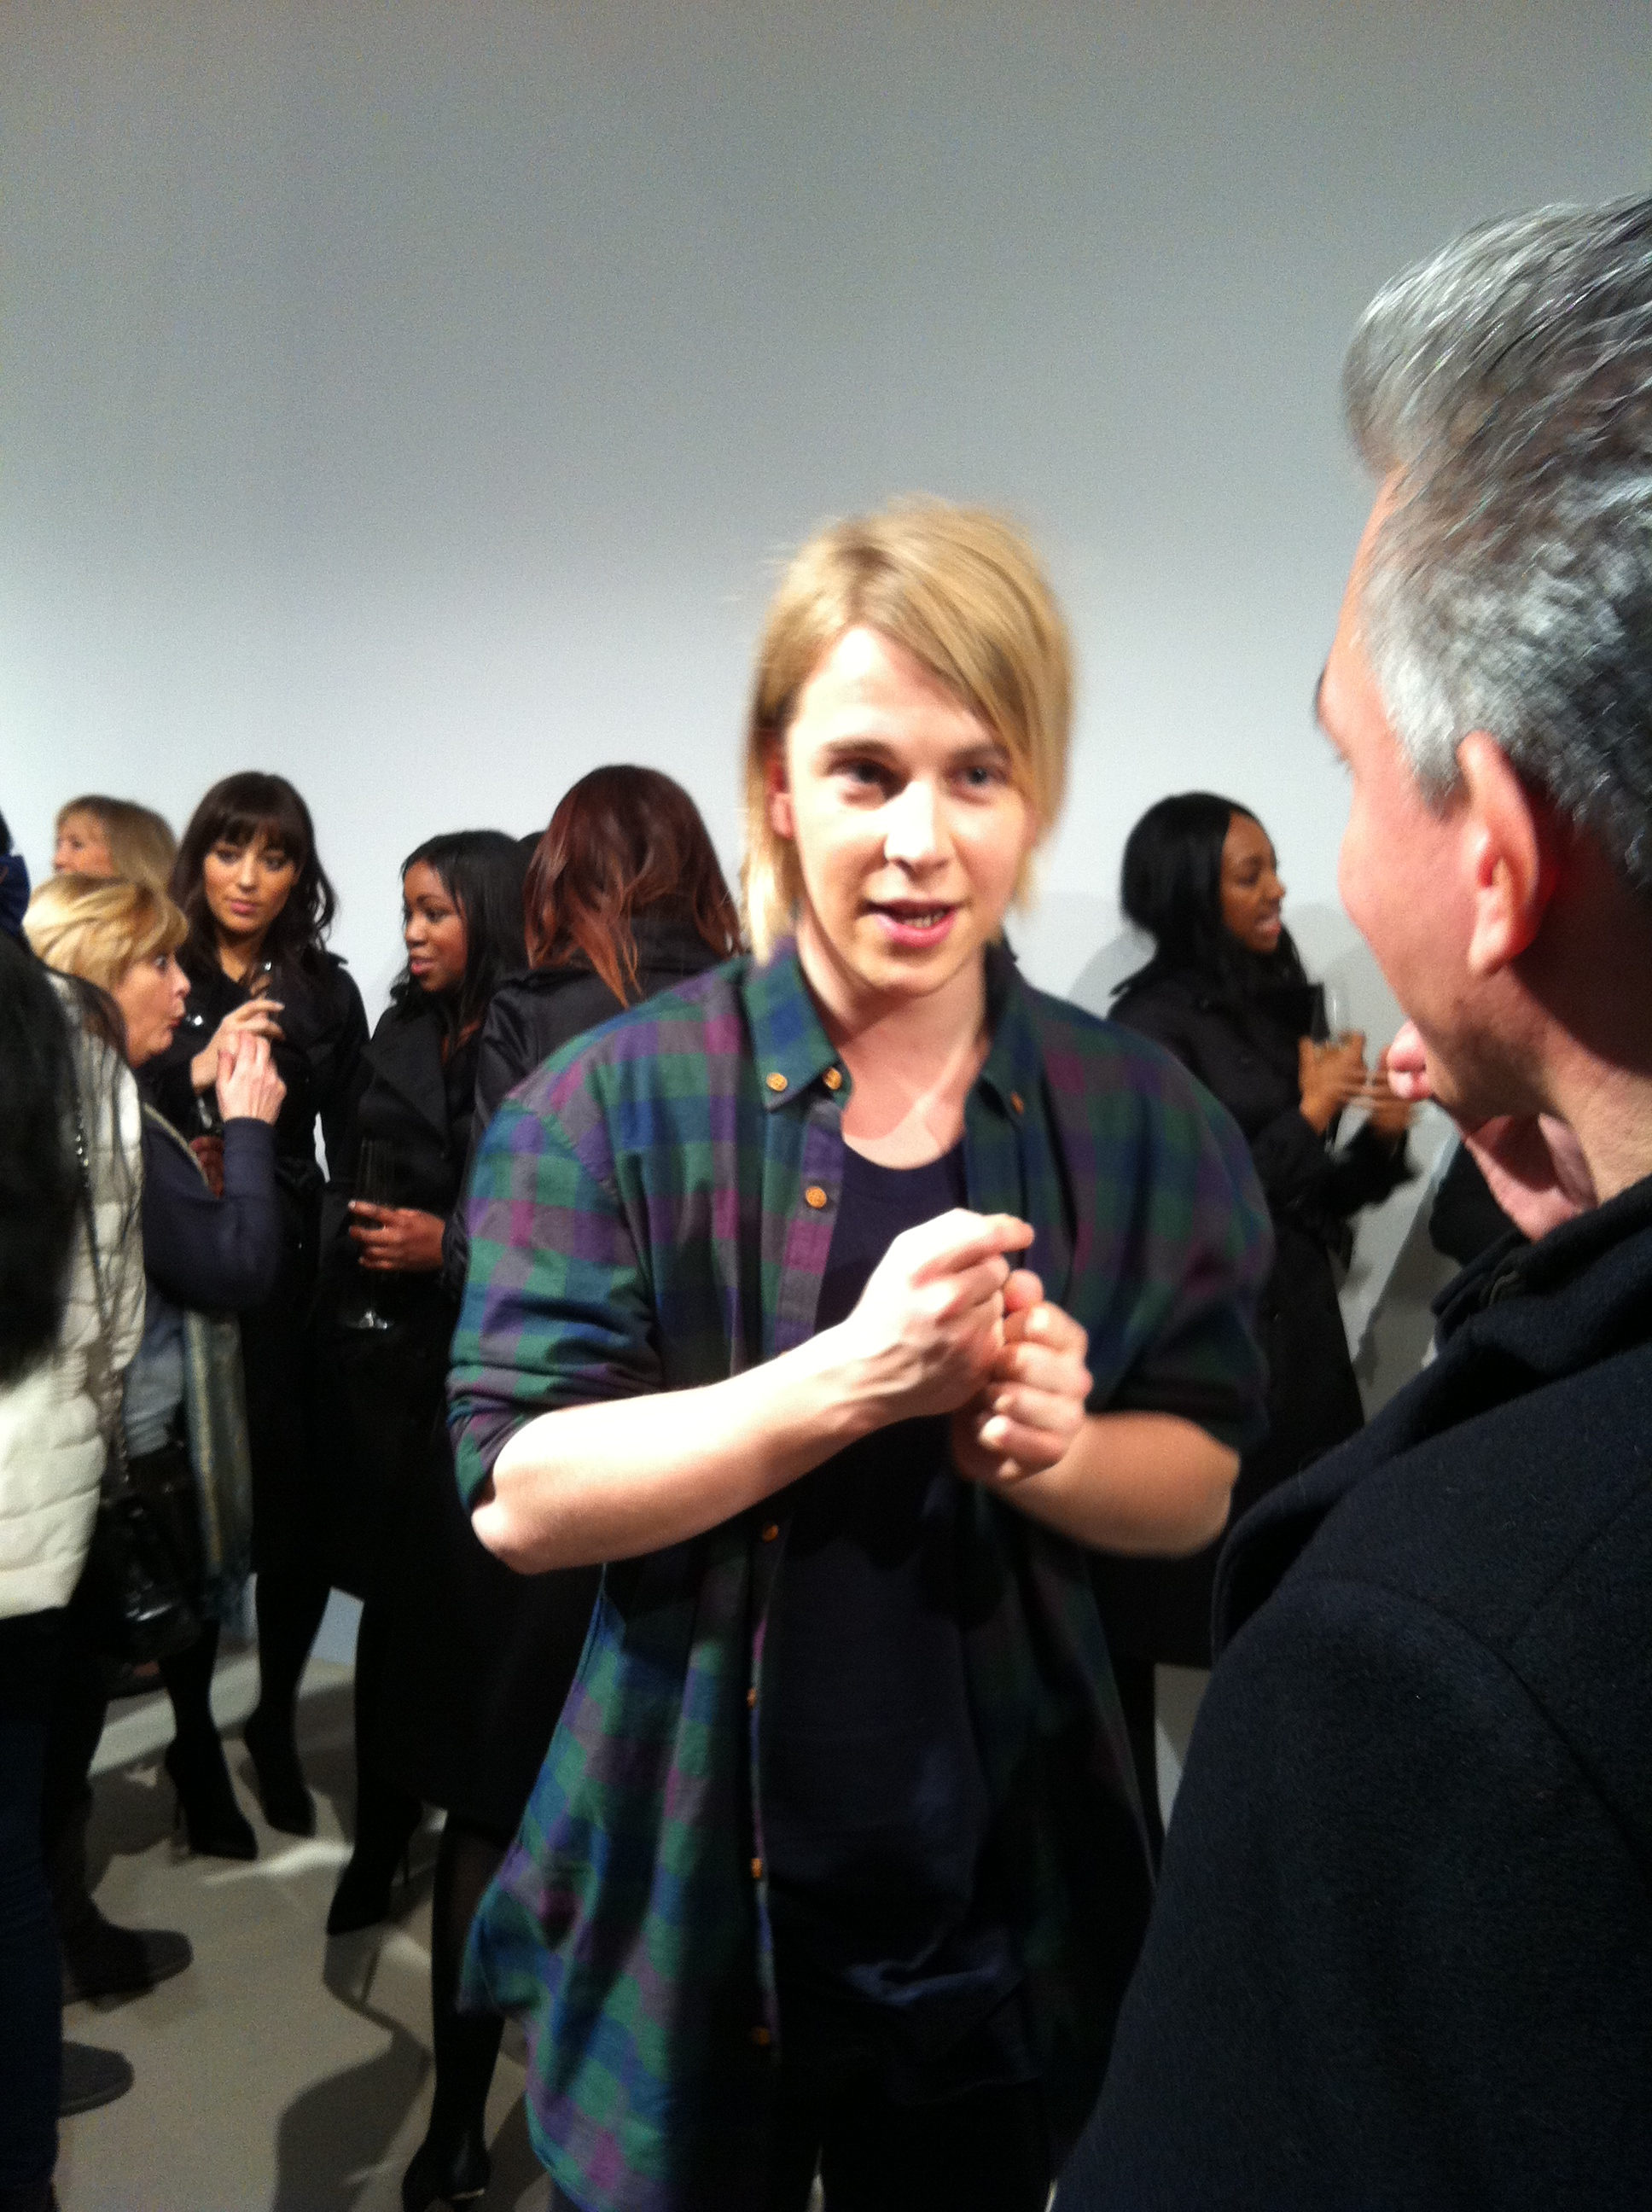 Tom Odell - After Burberry Prorsum AW Catwalk Show